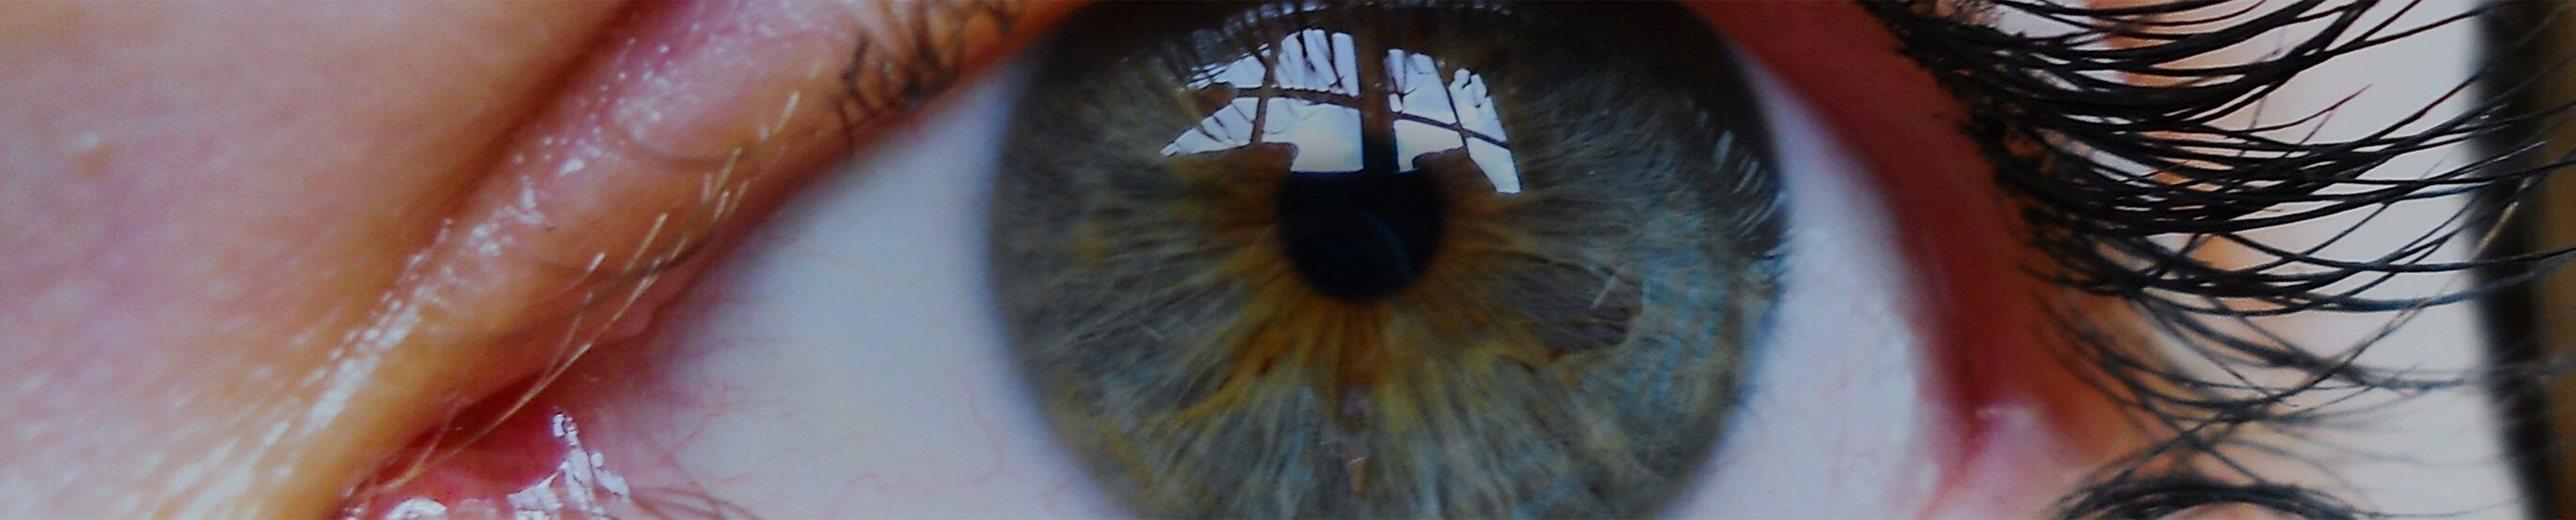 Closeup of a woman's eye